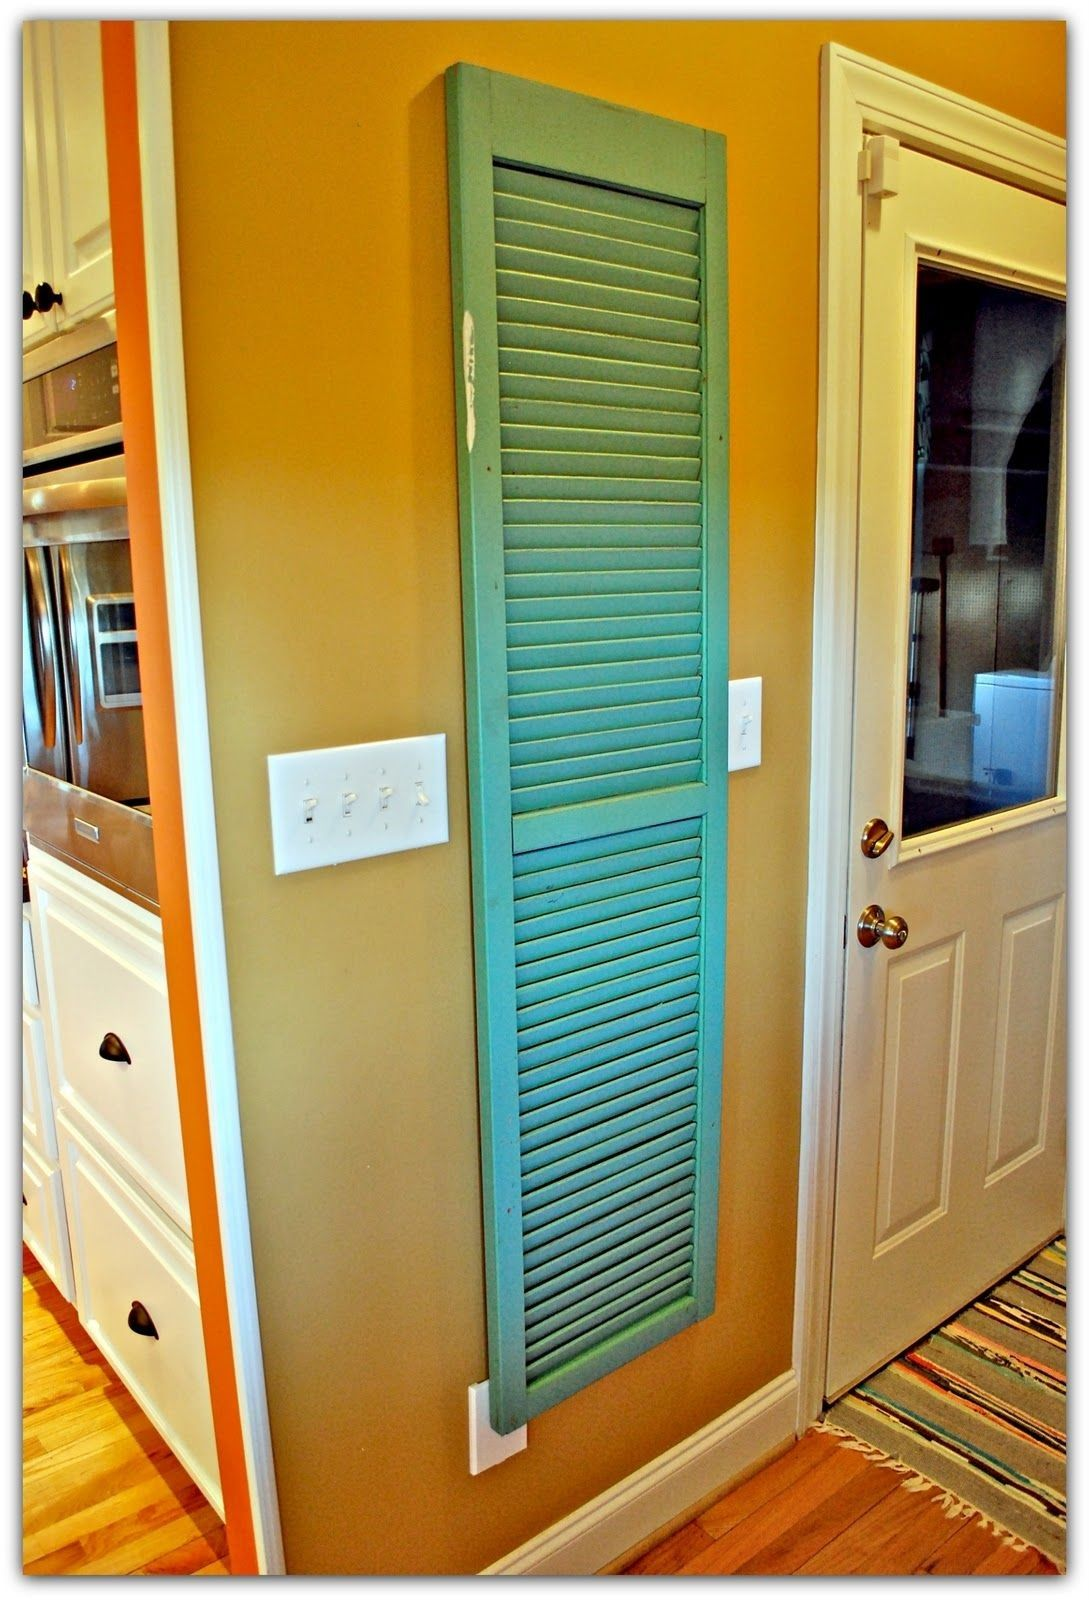 Cool diy ideas crafts shutter projects home decor decor